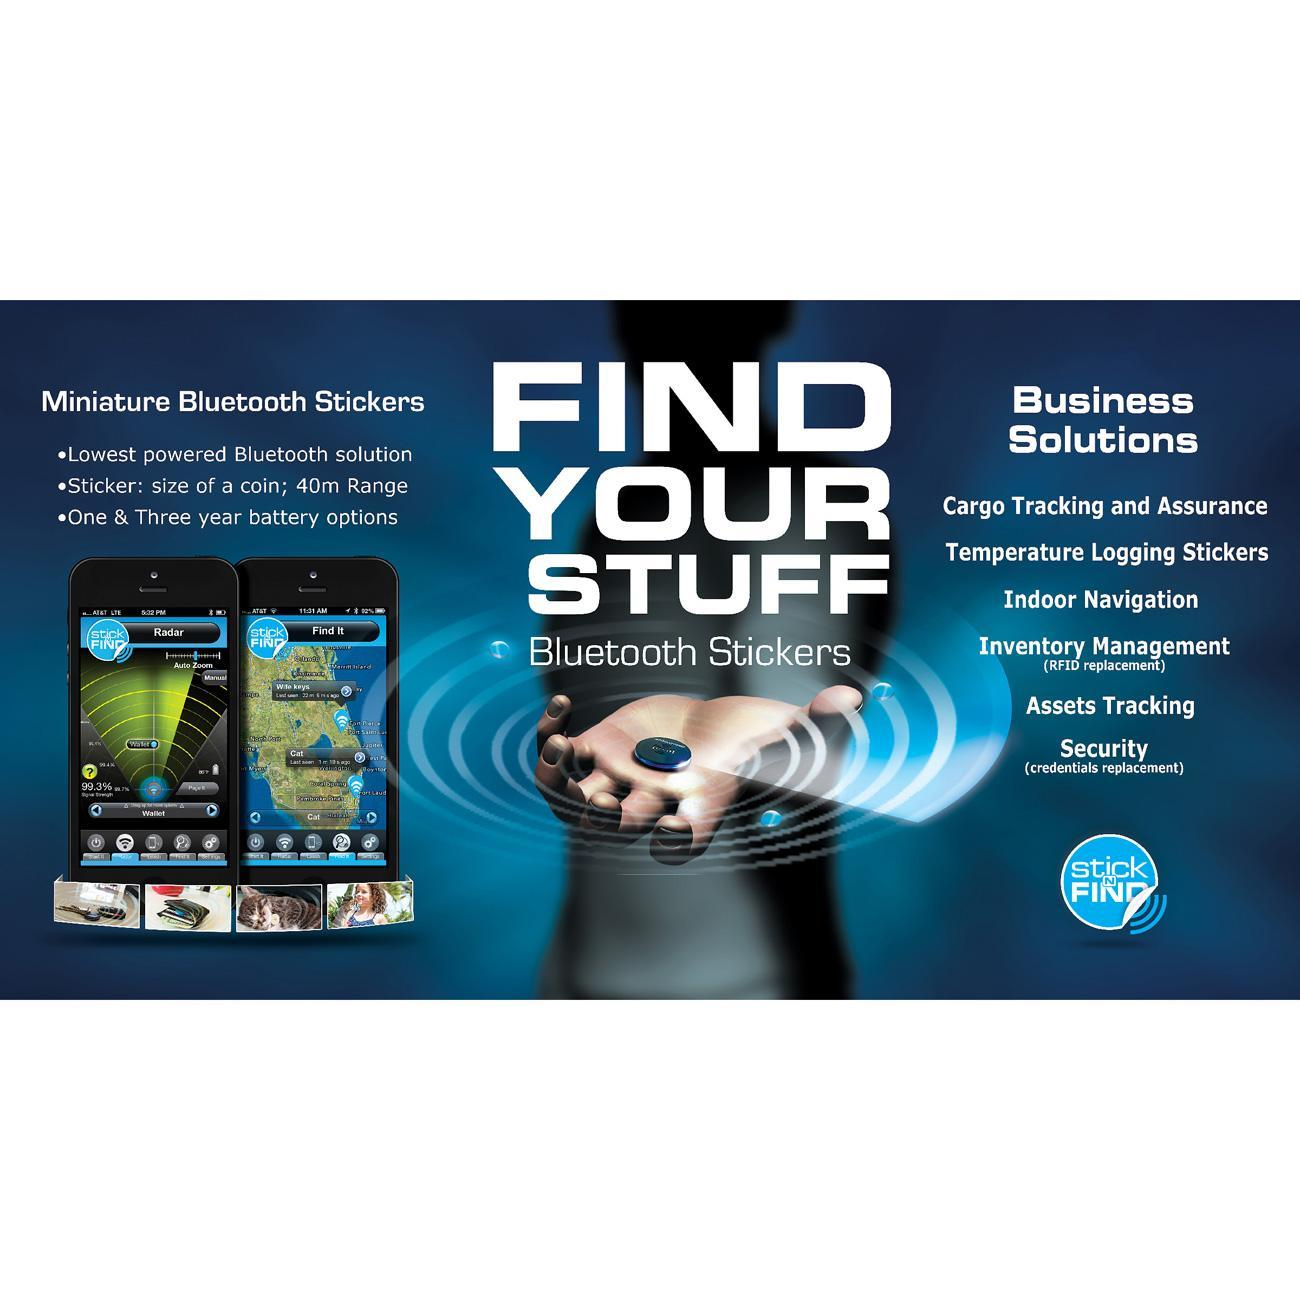 Smead 02218 Stick-N-Find Bluetooth Location Tracker - Bluetooth - 2 / Pack  - Black